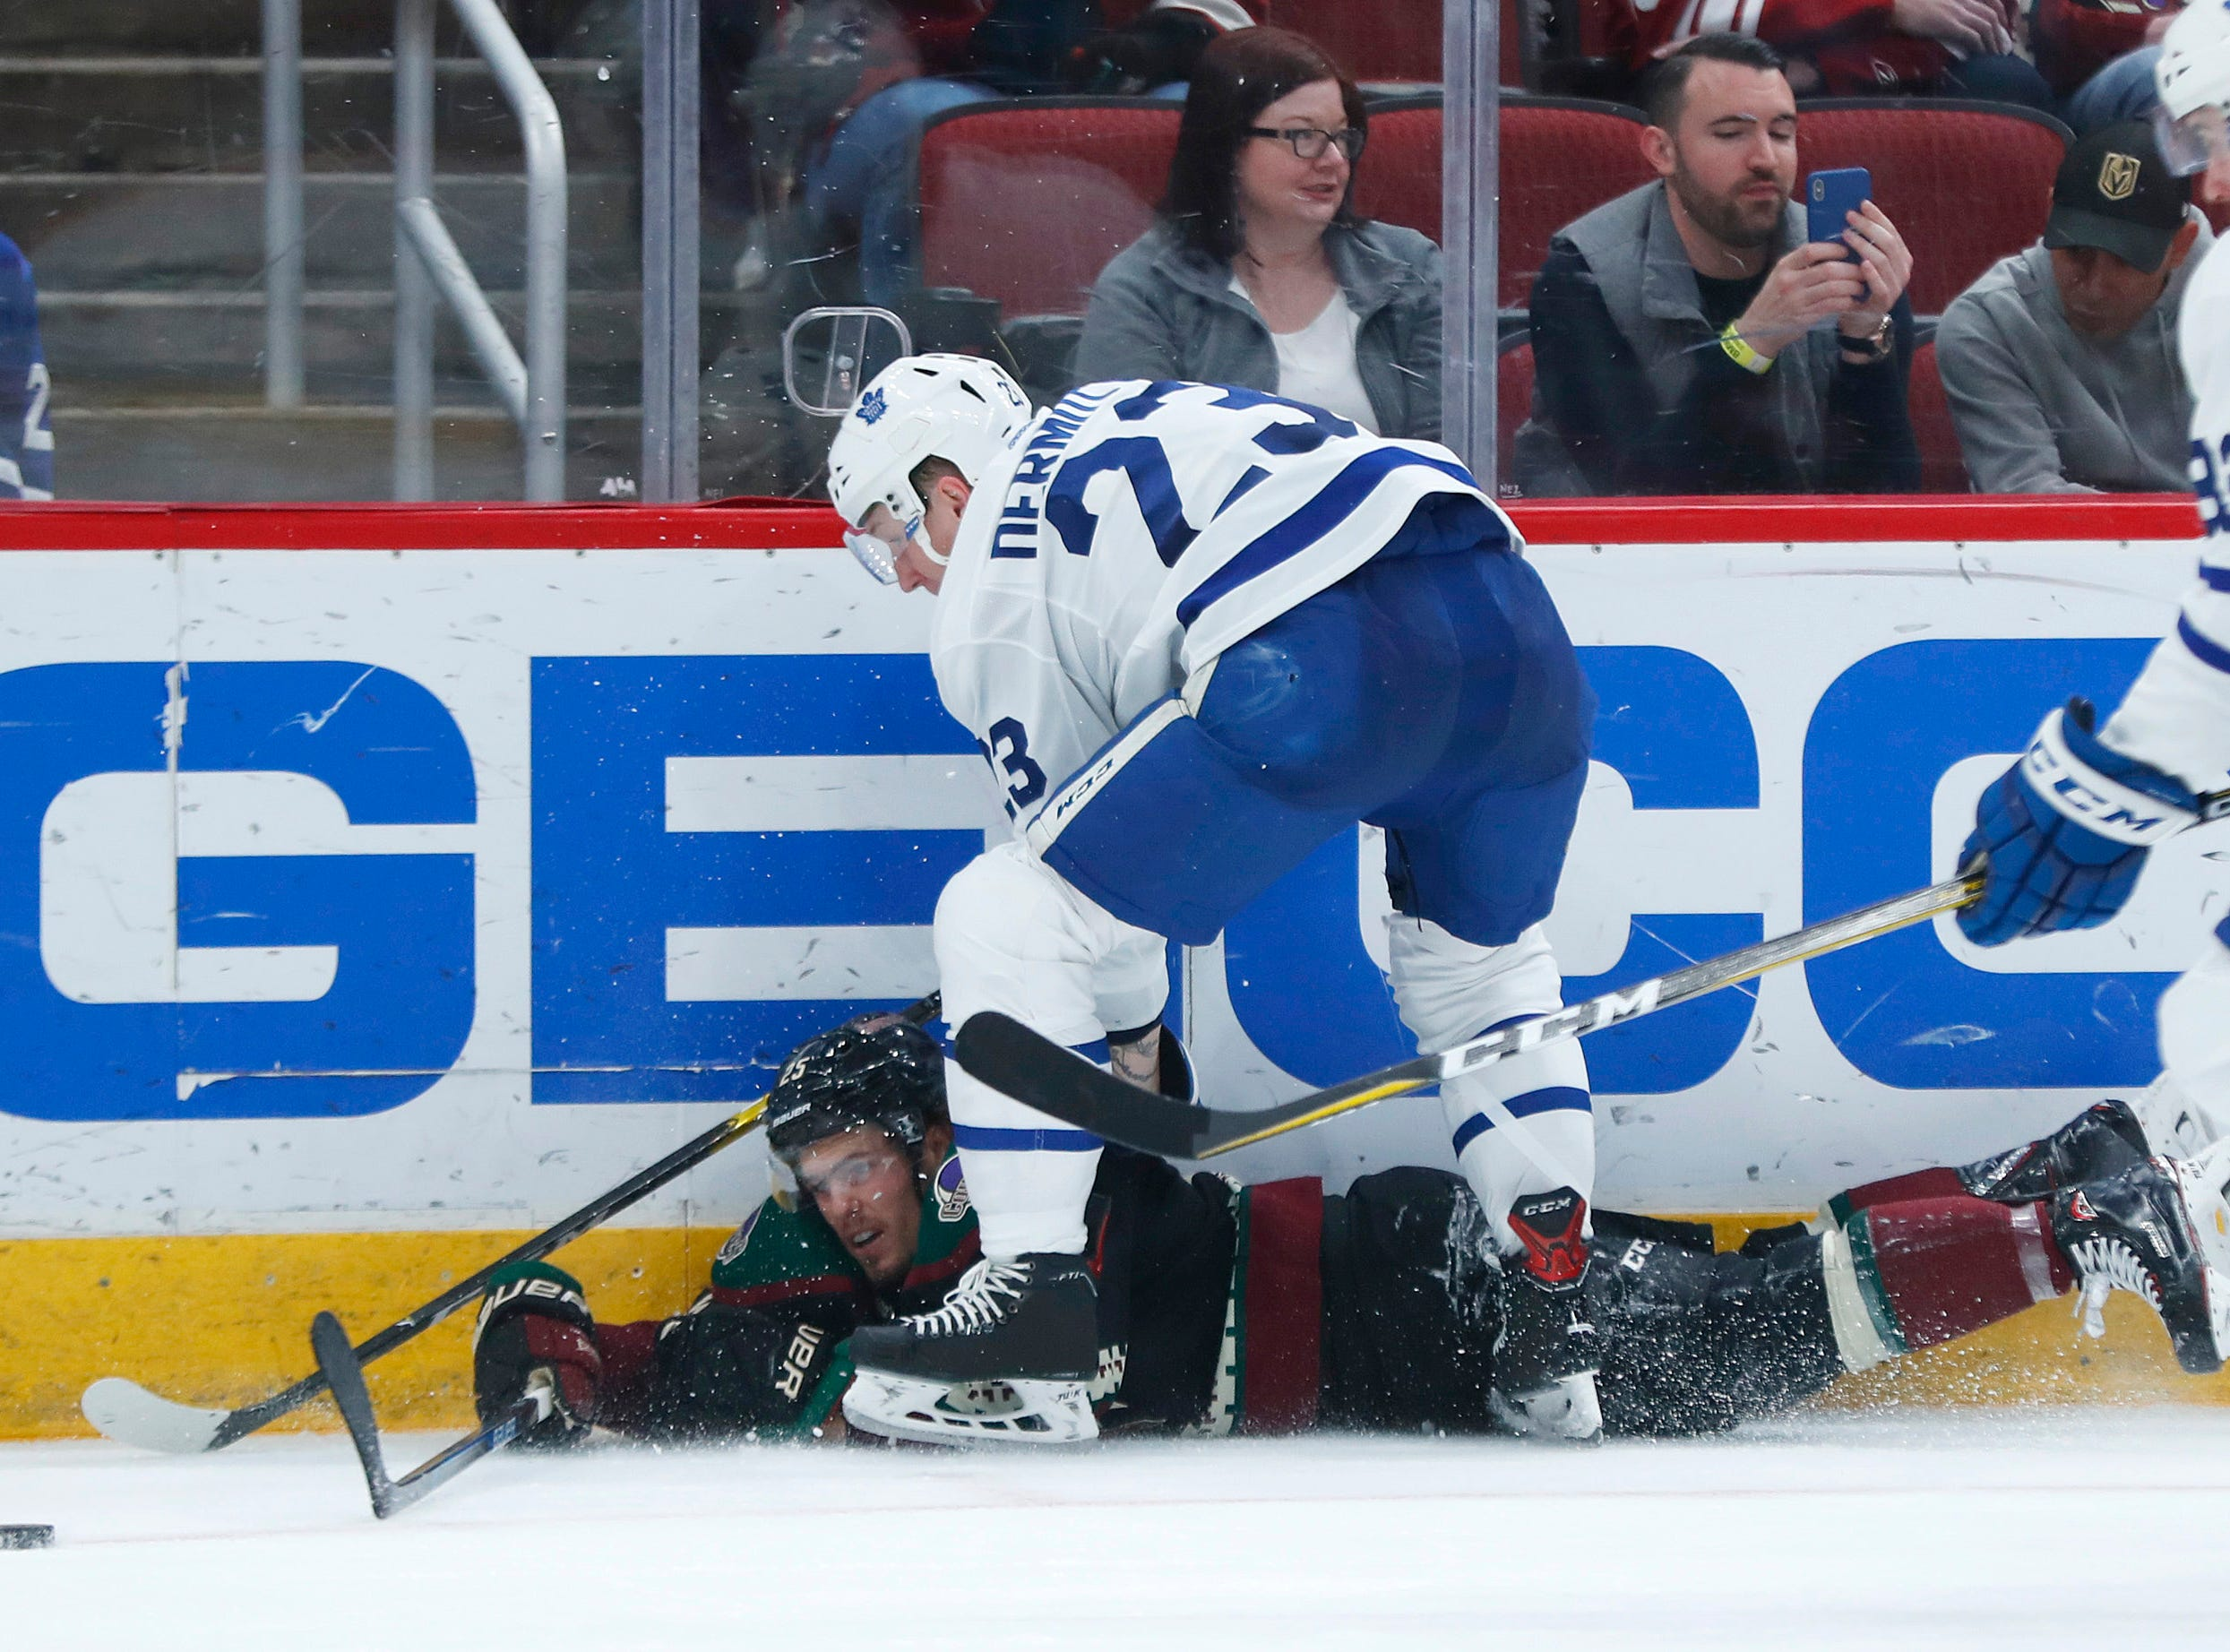 Maple Leafs' Travis Dermott (23) knocks Coyotes' Nick Cousins to the ice as he attempts to make a pass during the second period at Gila River Arena in Glendale, Ariz. on February 16, 2019.